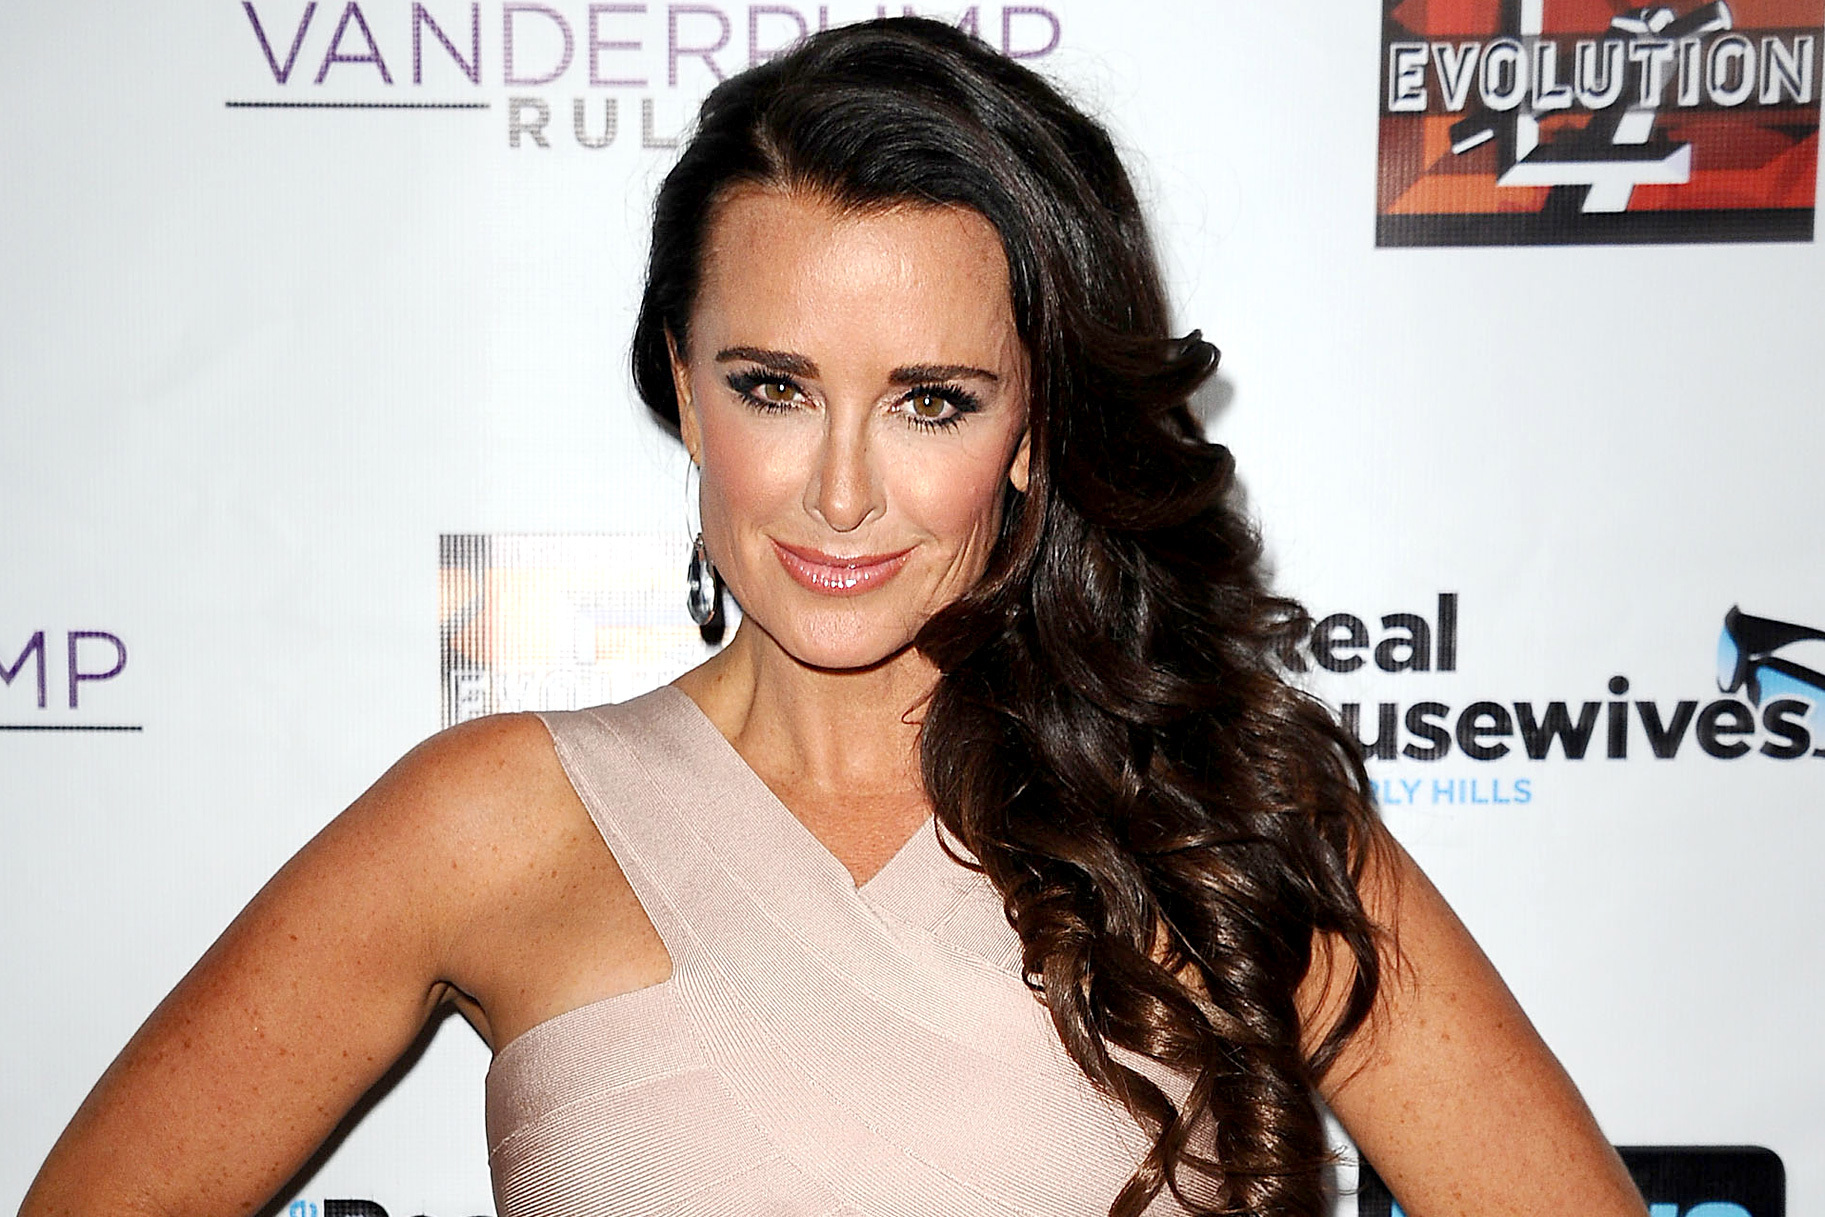 Images Kyle Richards nudes (46 foto and video), Ass, Cleavage, Selfie, butt 2017